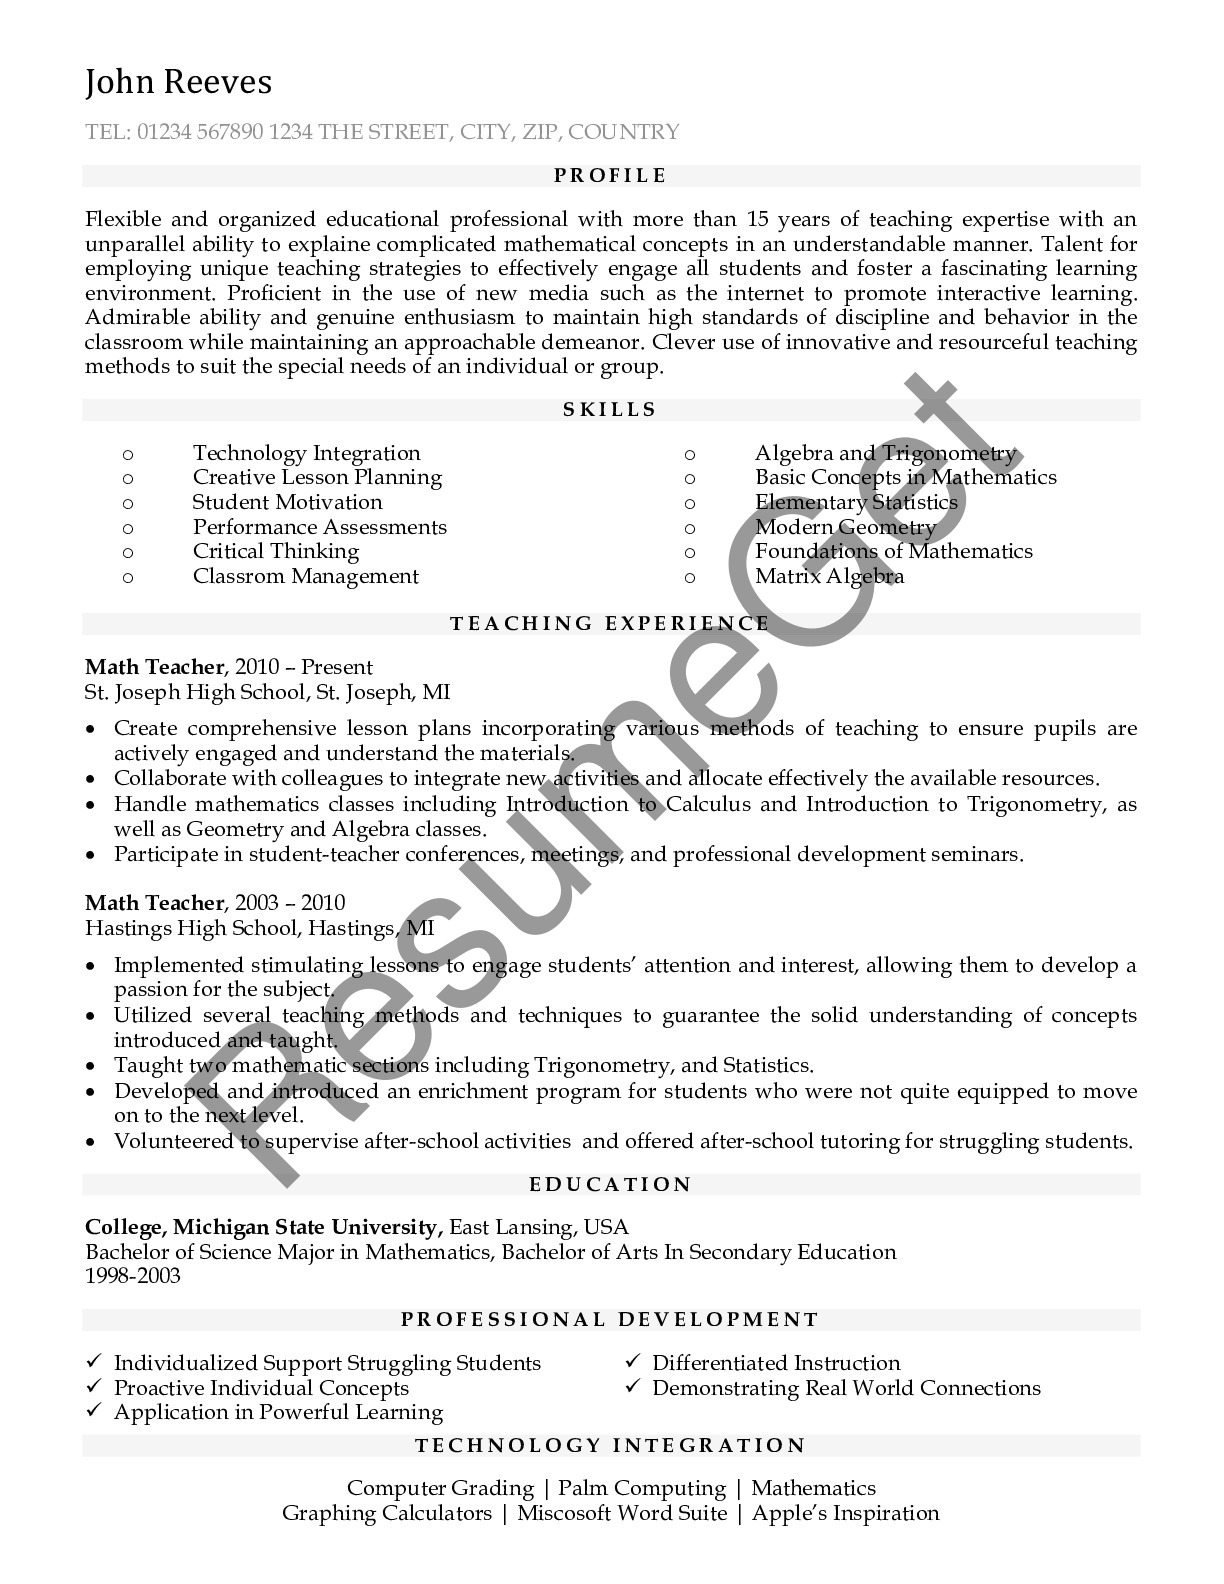 Resume for Teacher